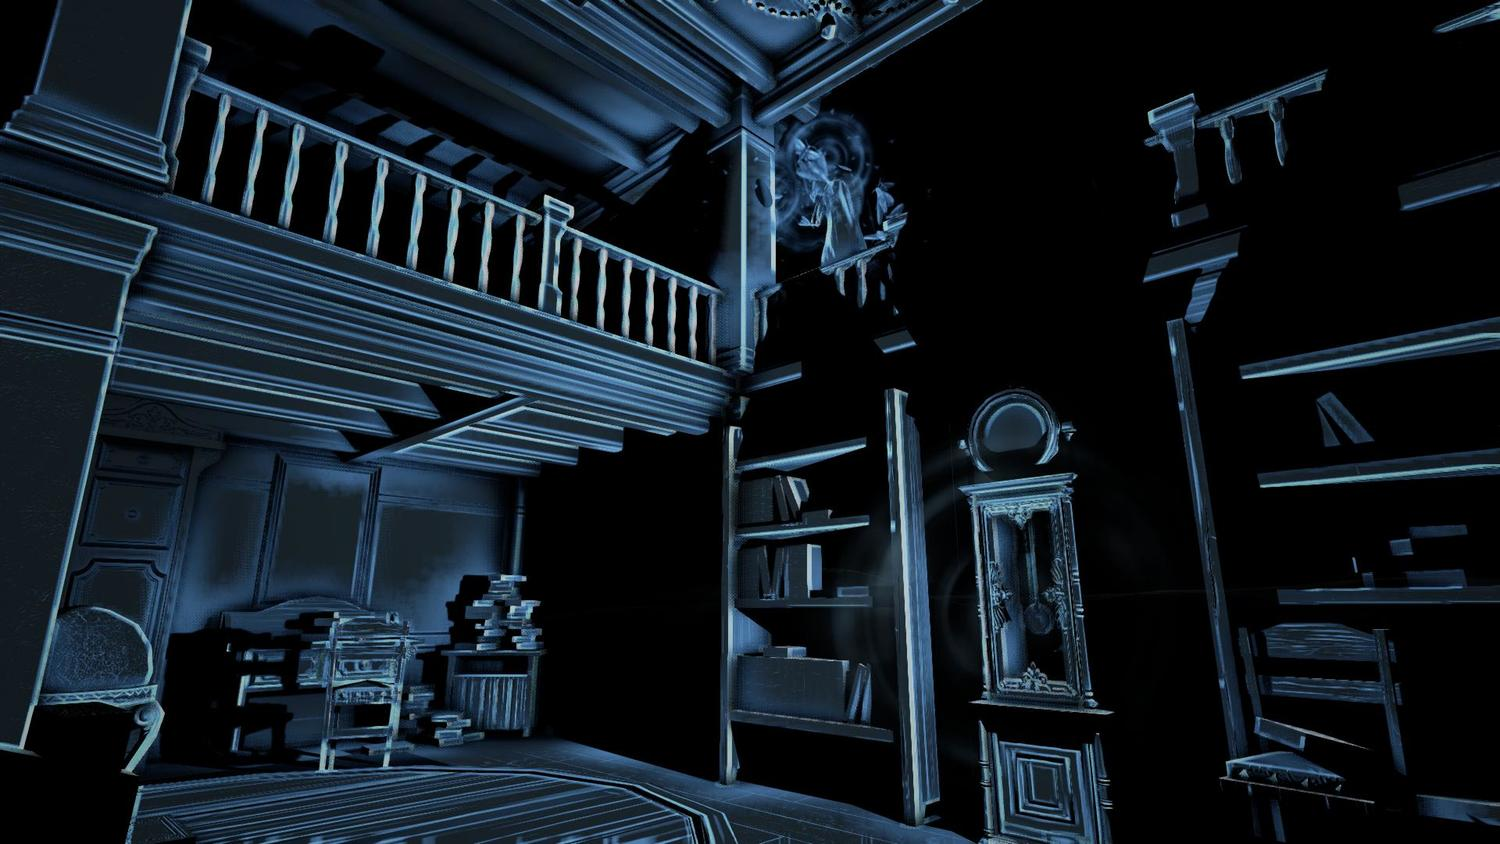 Perception is a sound-based game of hide-and-seek